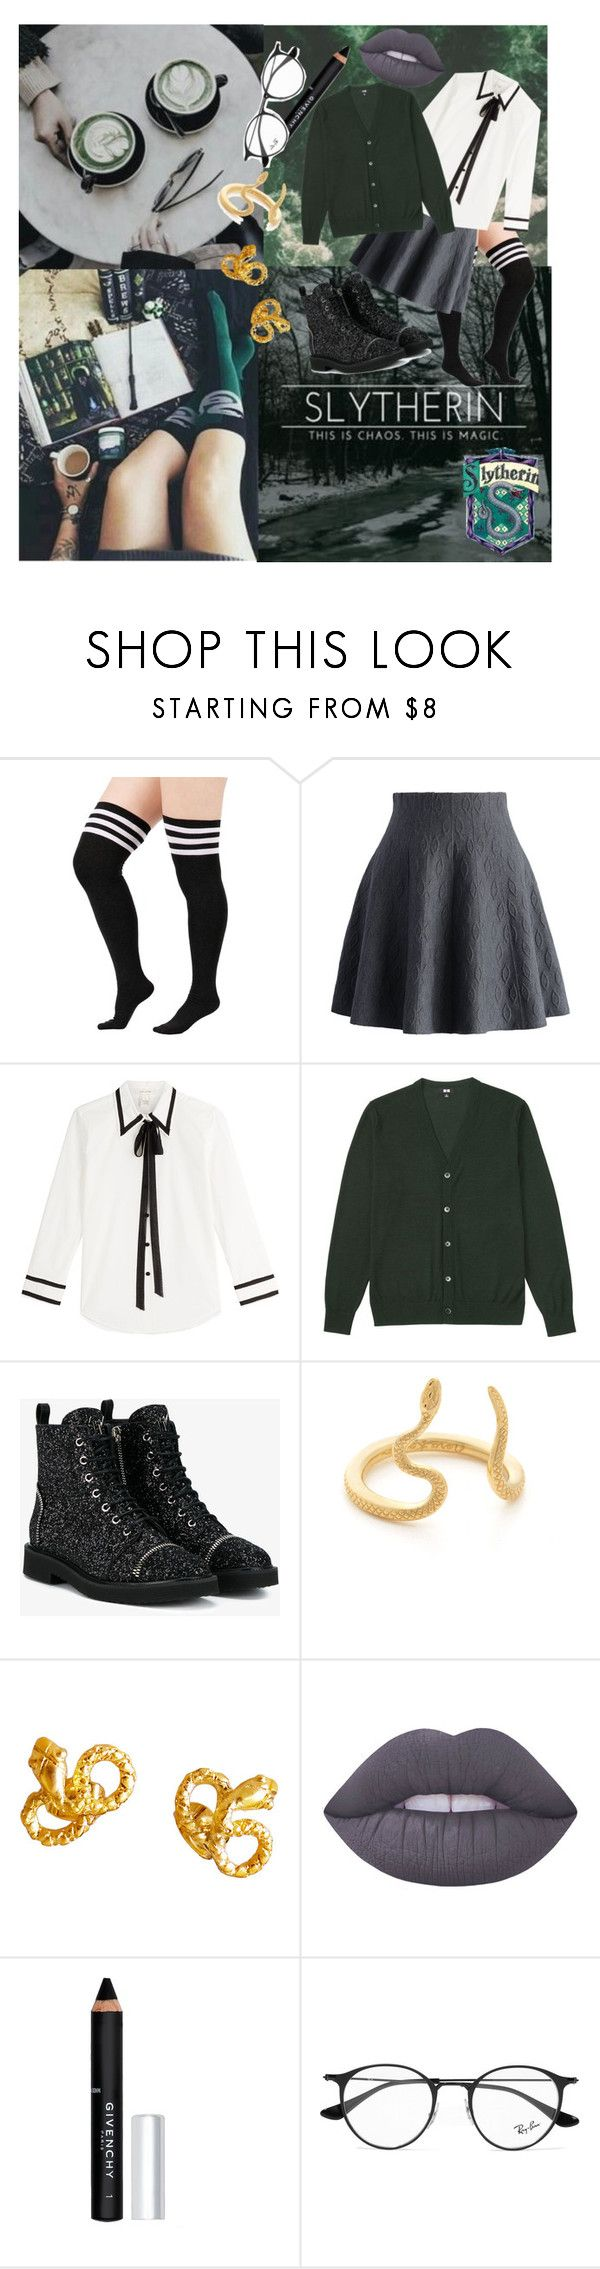 """""""Slytherin """" by chilcotea201 ❤ liked on Polyvore featuring Chicwish, Marc Jacobs, Uniqlo, Giuseppe Zanotti, Nora Kogan, Lime Crime, Givenchy and Ray-Ban"""